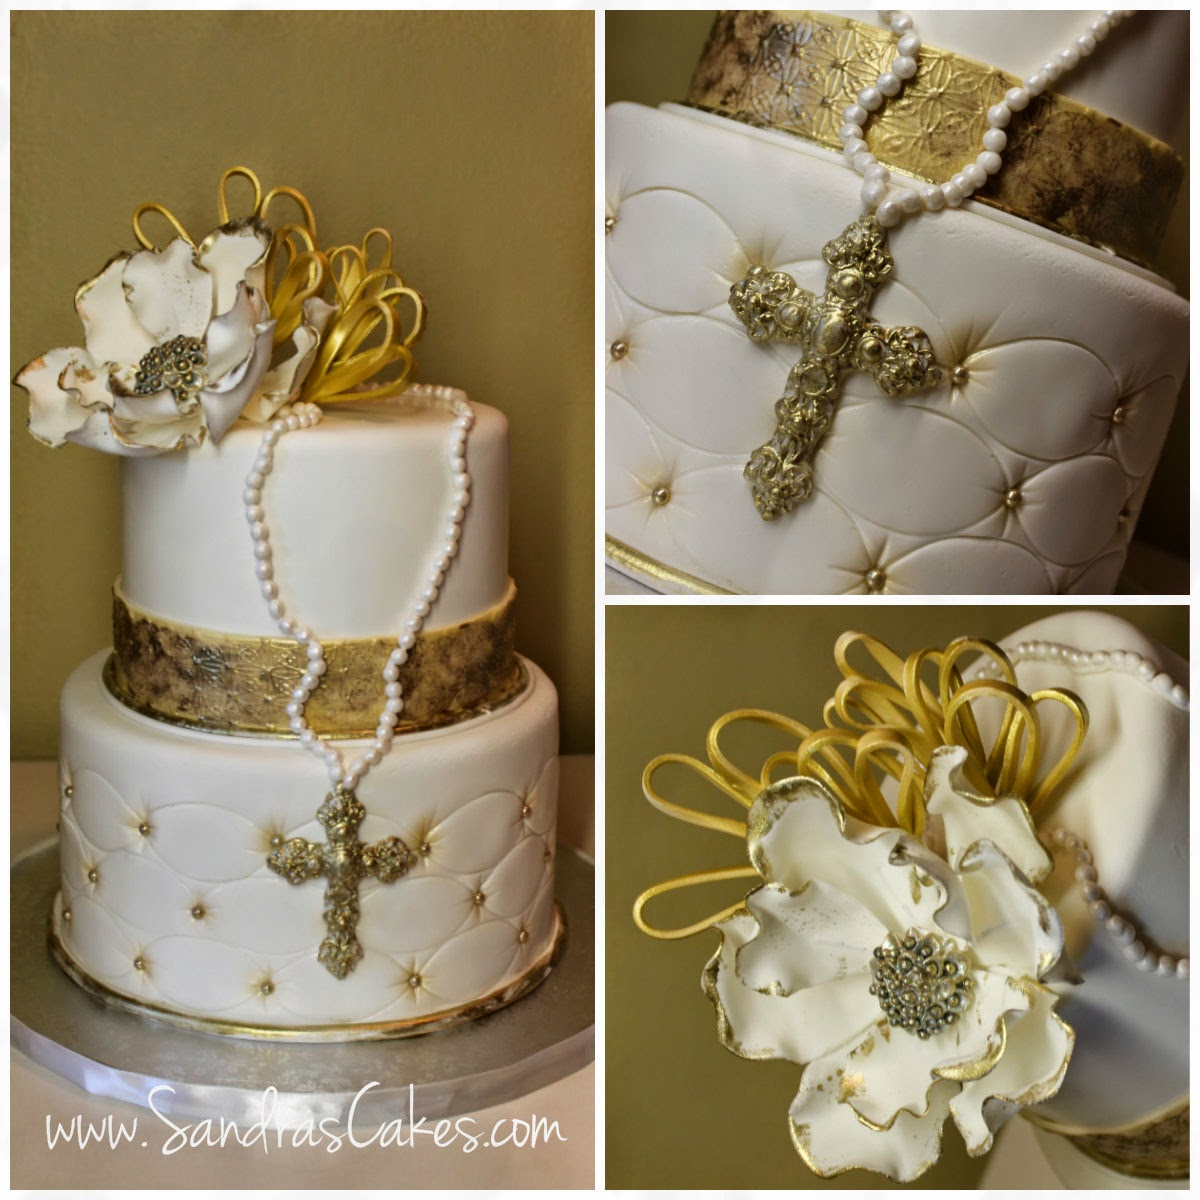 St Communion Cake Toppers